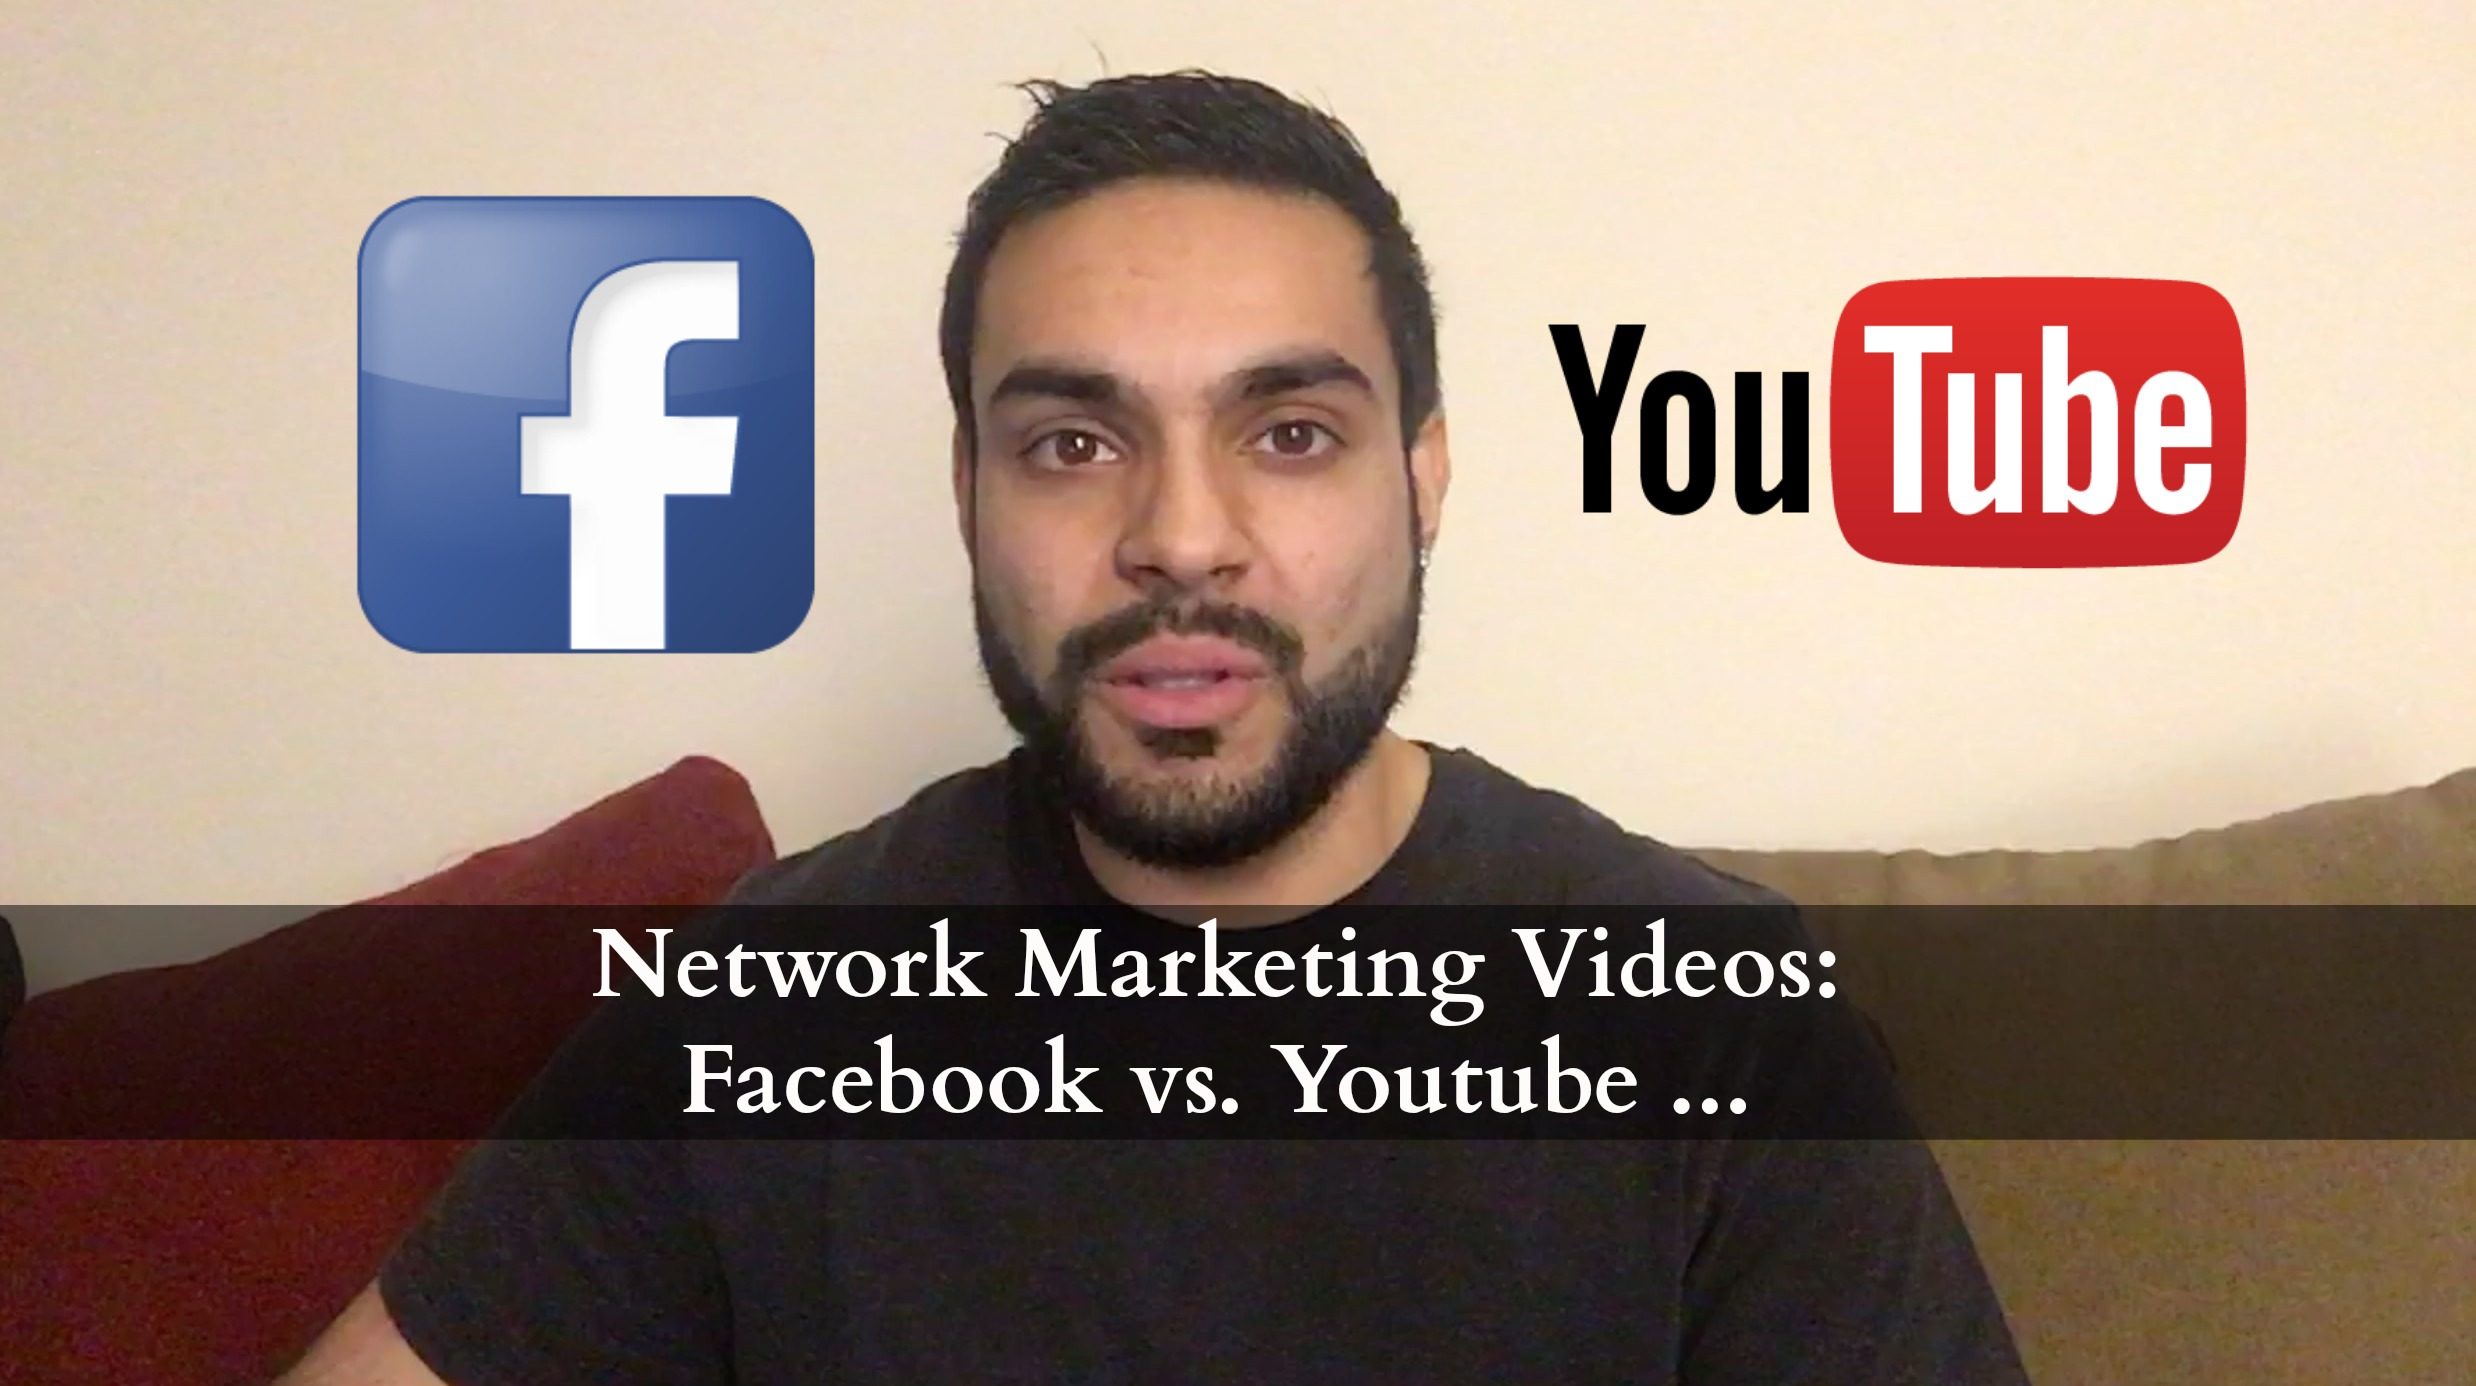 Network Marketing Videos: Facebook vs. Youtube